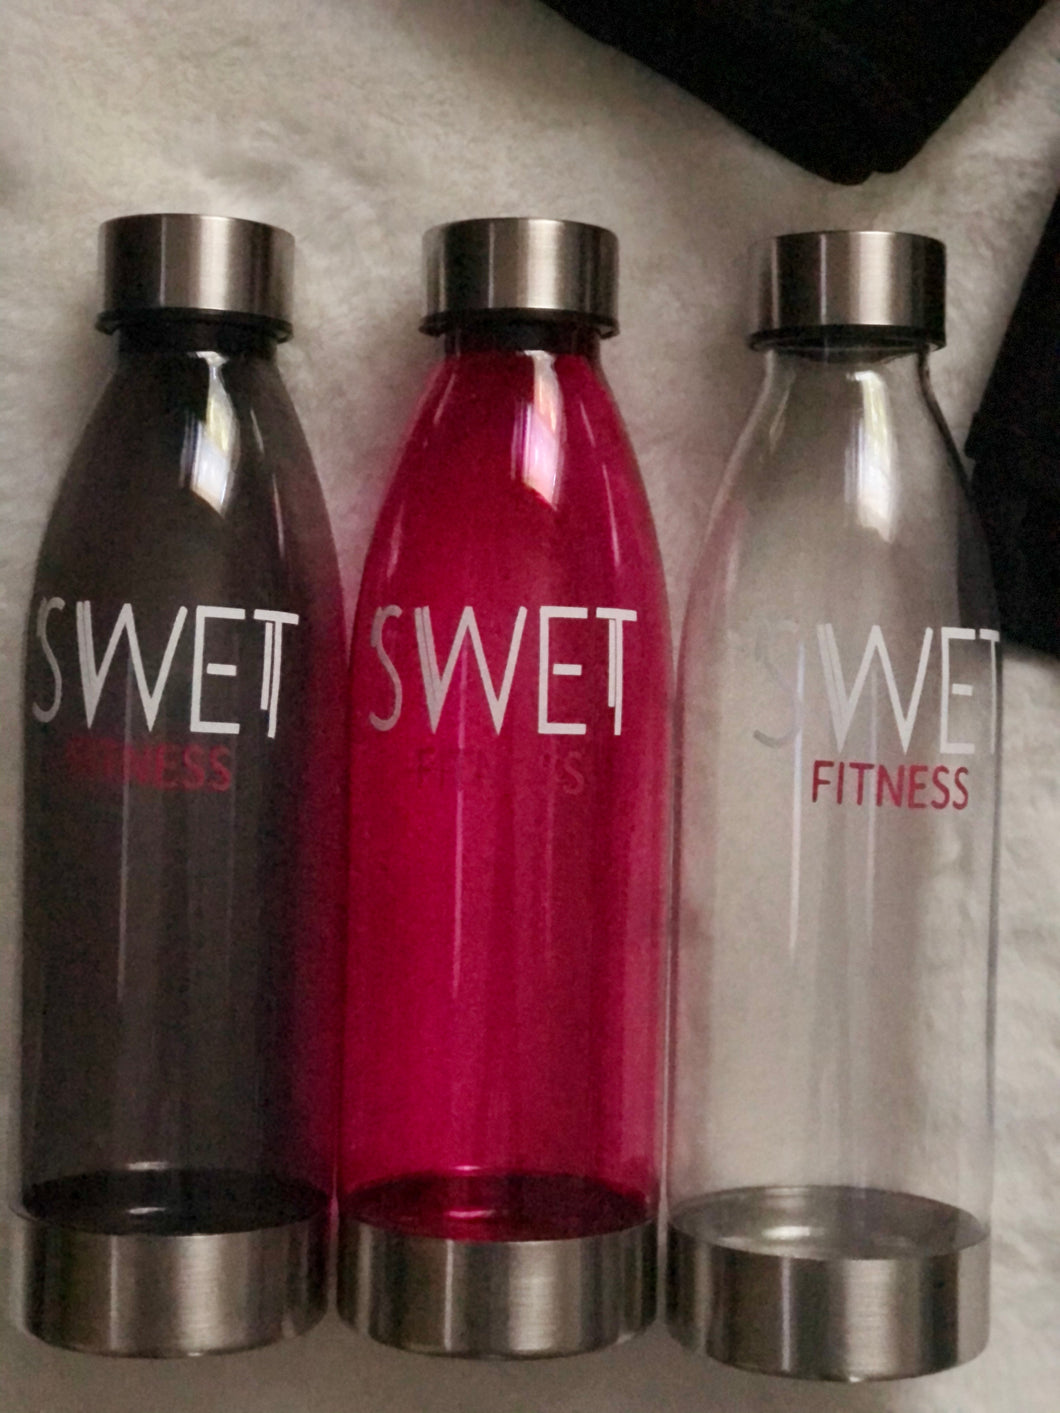 SWET Fitness water bottle